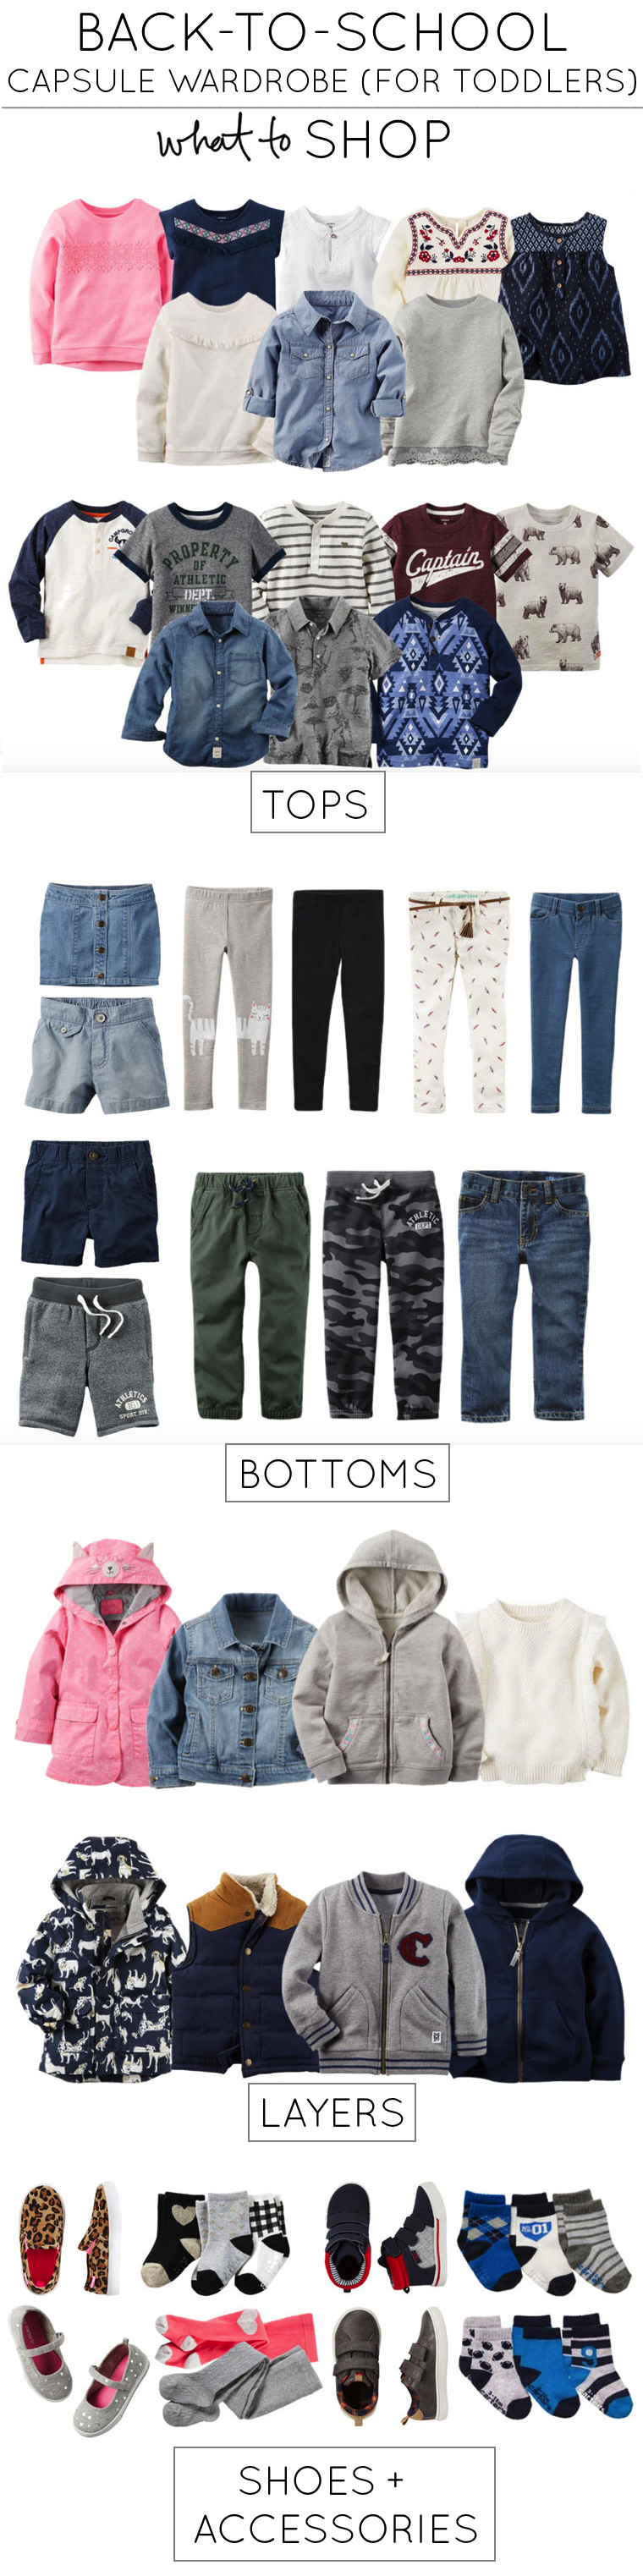 How to Create a Back-to-School Capsule Wardrobe Collection for Toddlers (a.k.a., how to get the most bang for your buck when shopping for your kids this season!)